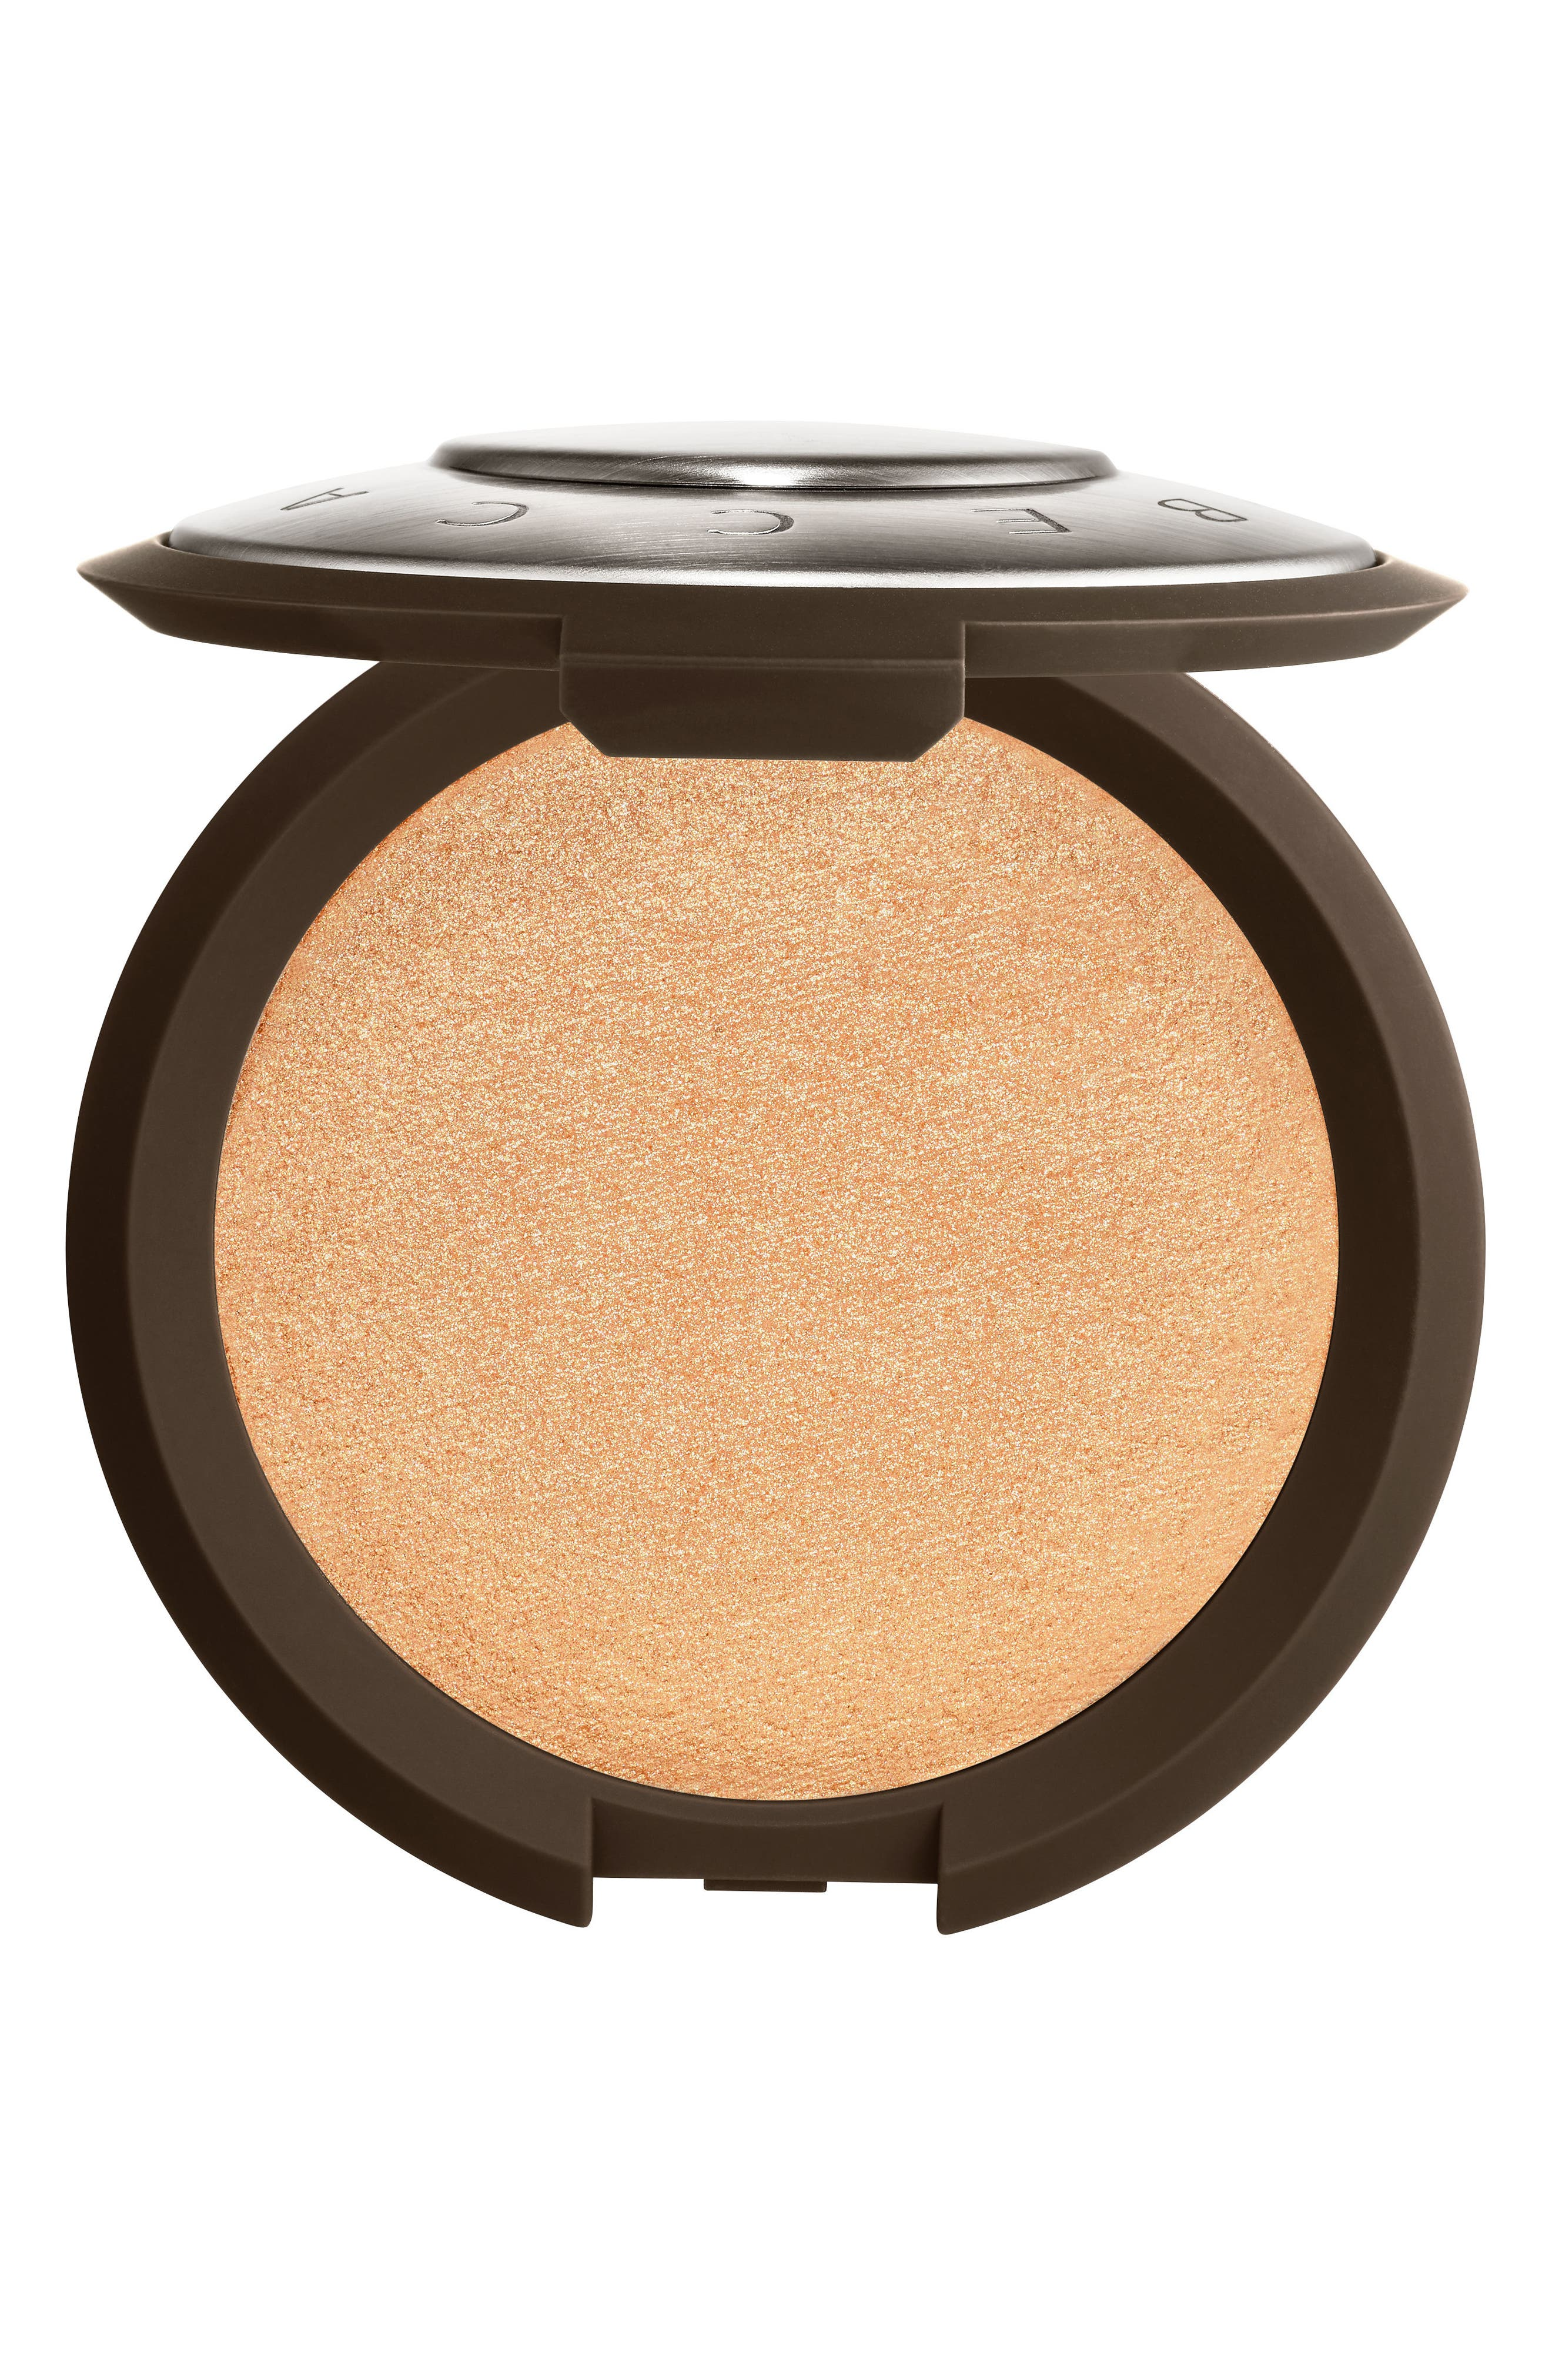 Main Image - BECCA Shimmering Skin Perfector Pressed Highlighter